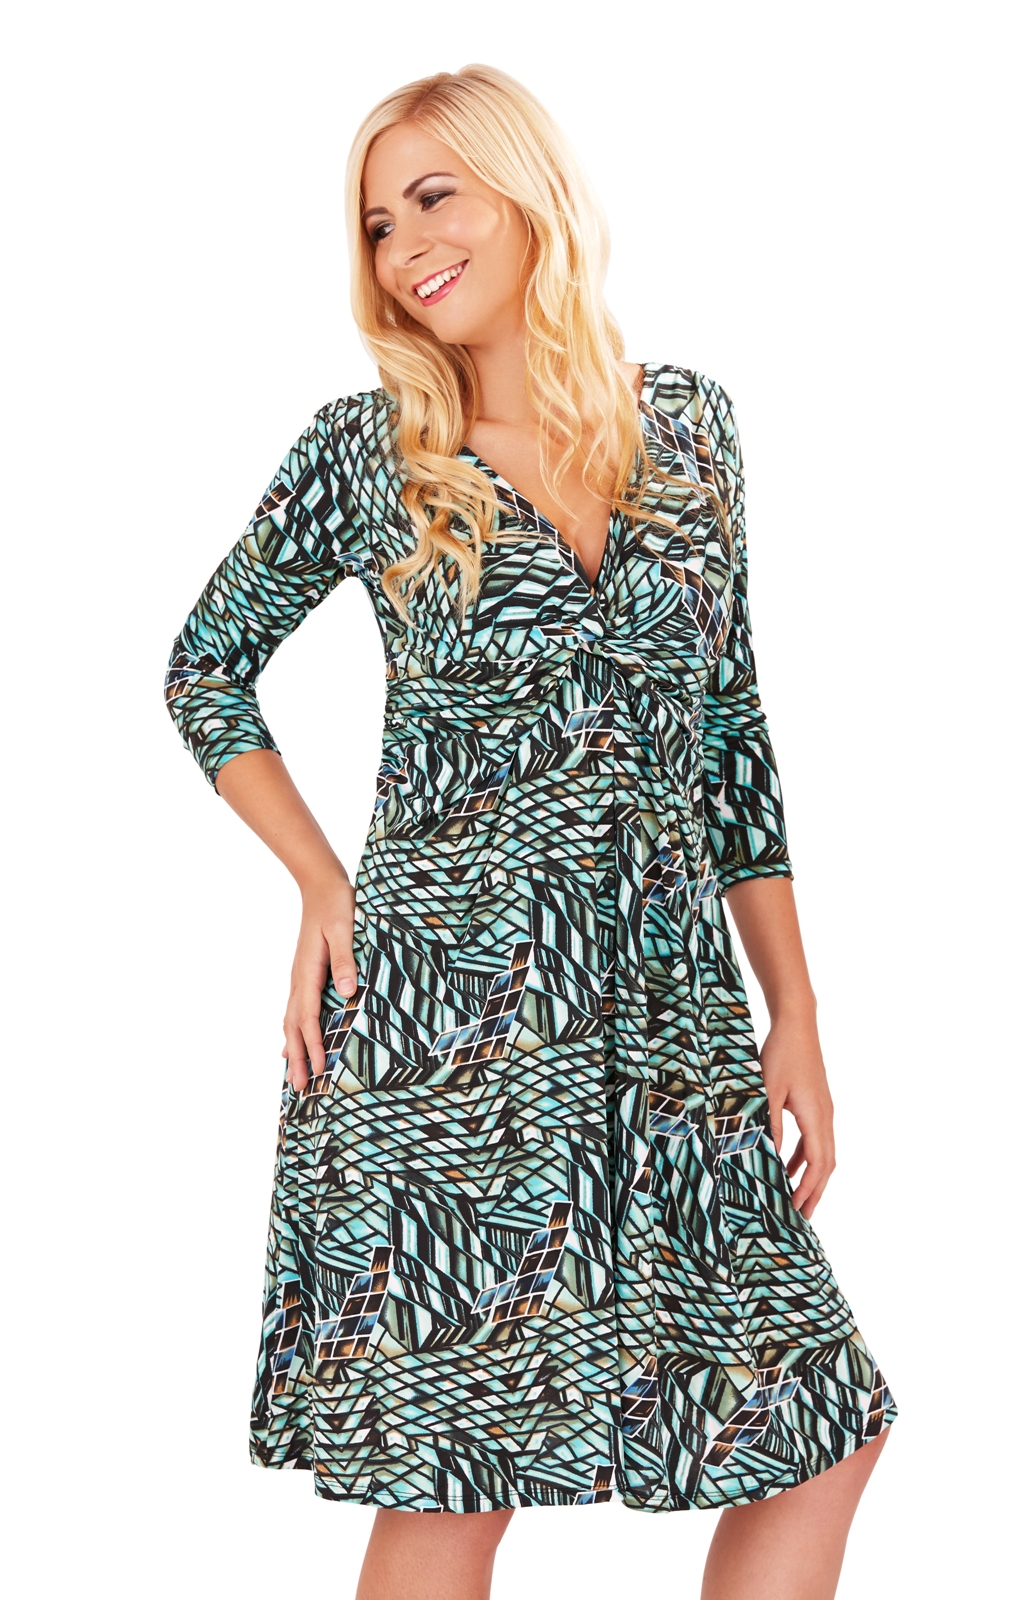 Shop our Collection of Women's Long Sleeve Dresses at dnxvvyut.ml for the Latest Designer Brands & Styles. FREE SHIPPING AVAILABLE!